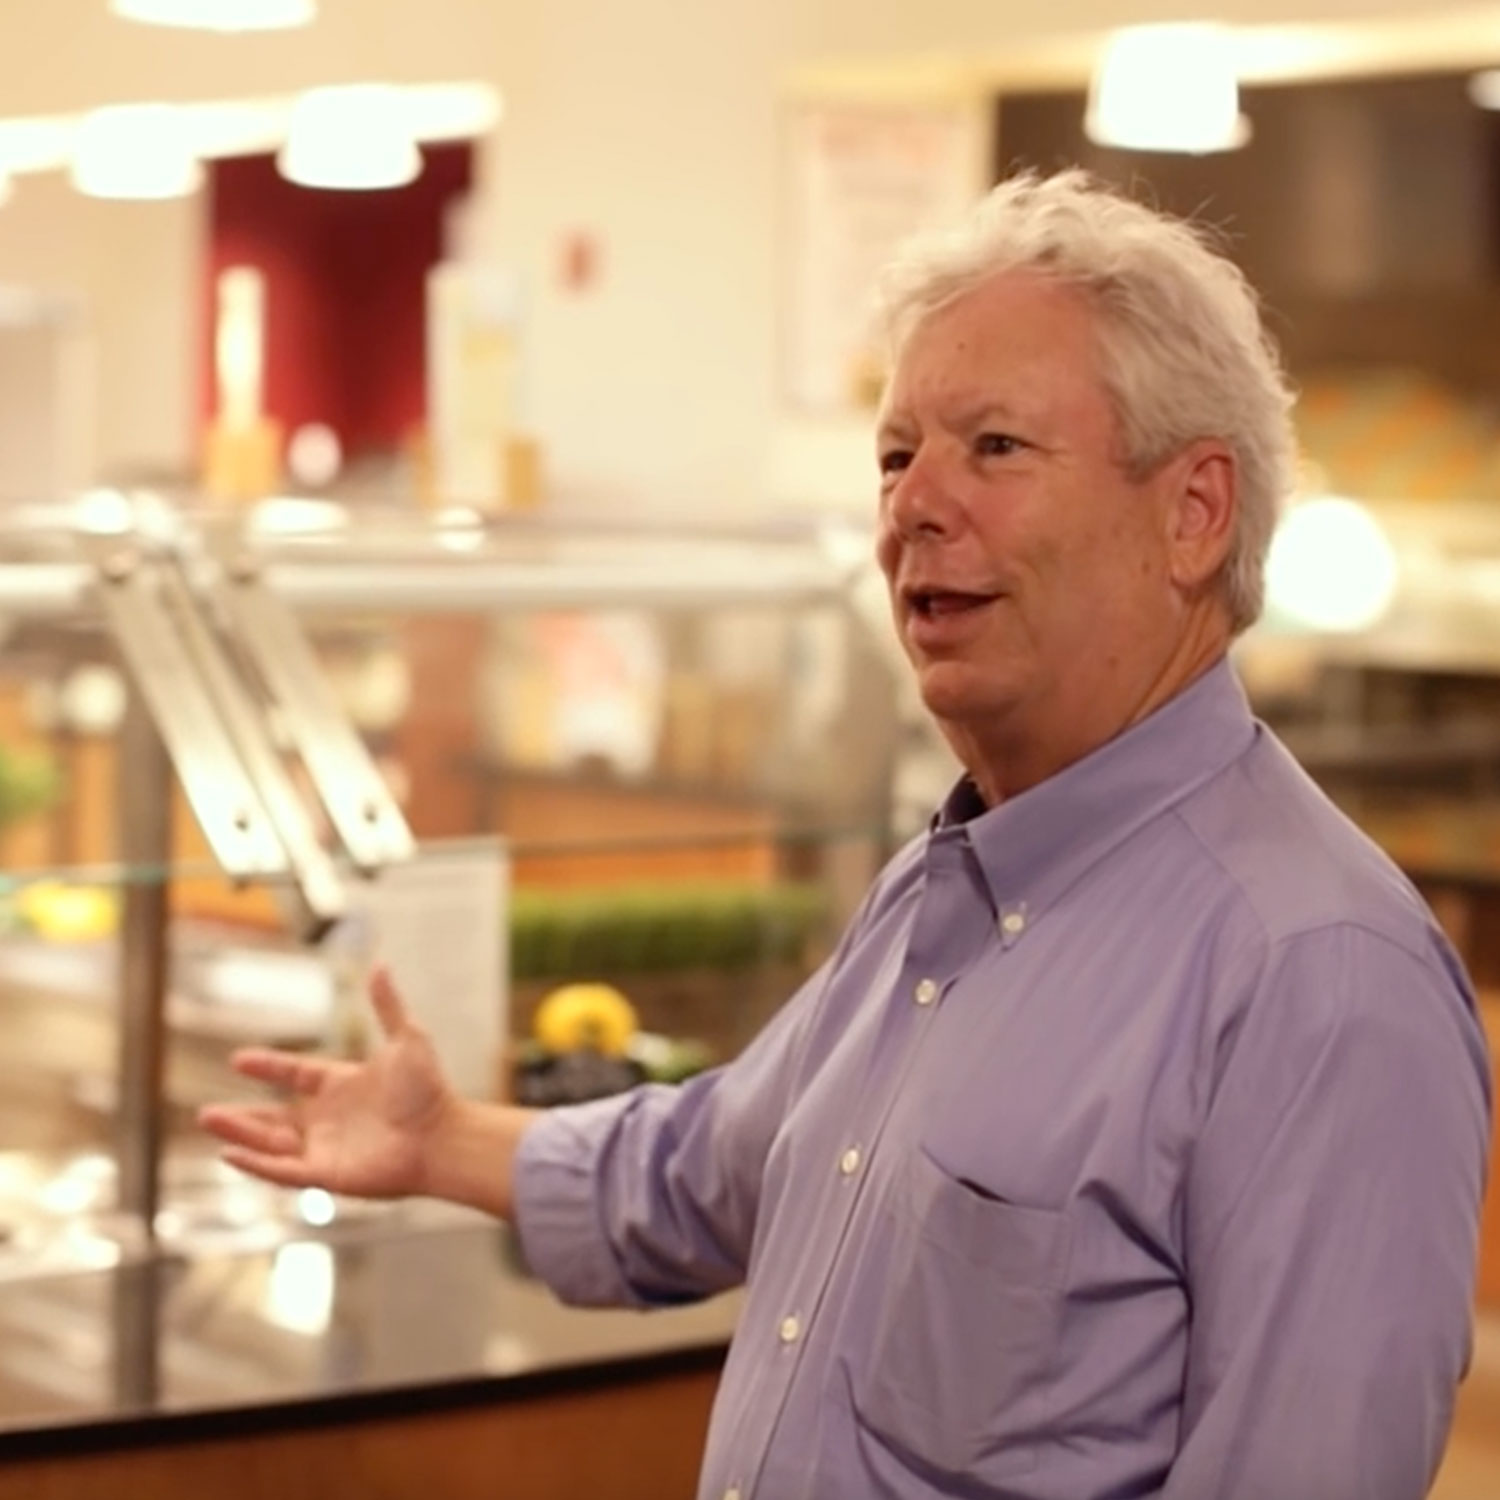 Video of Richard Thaler